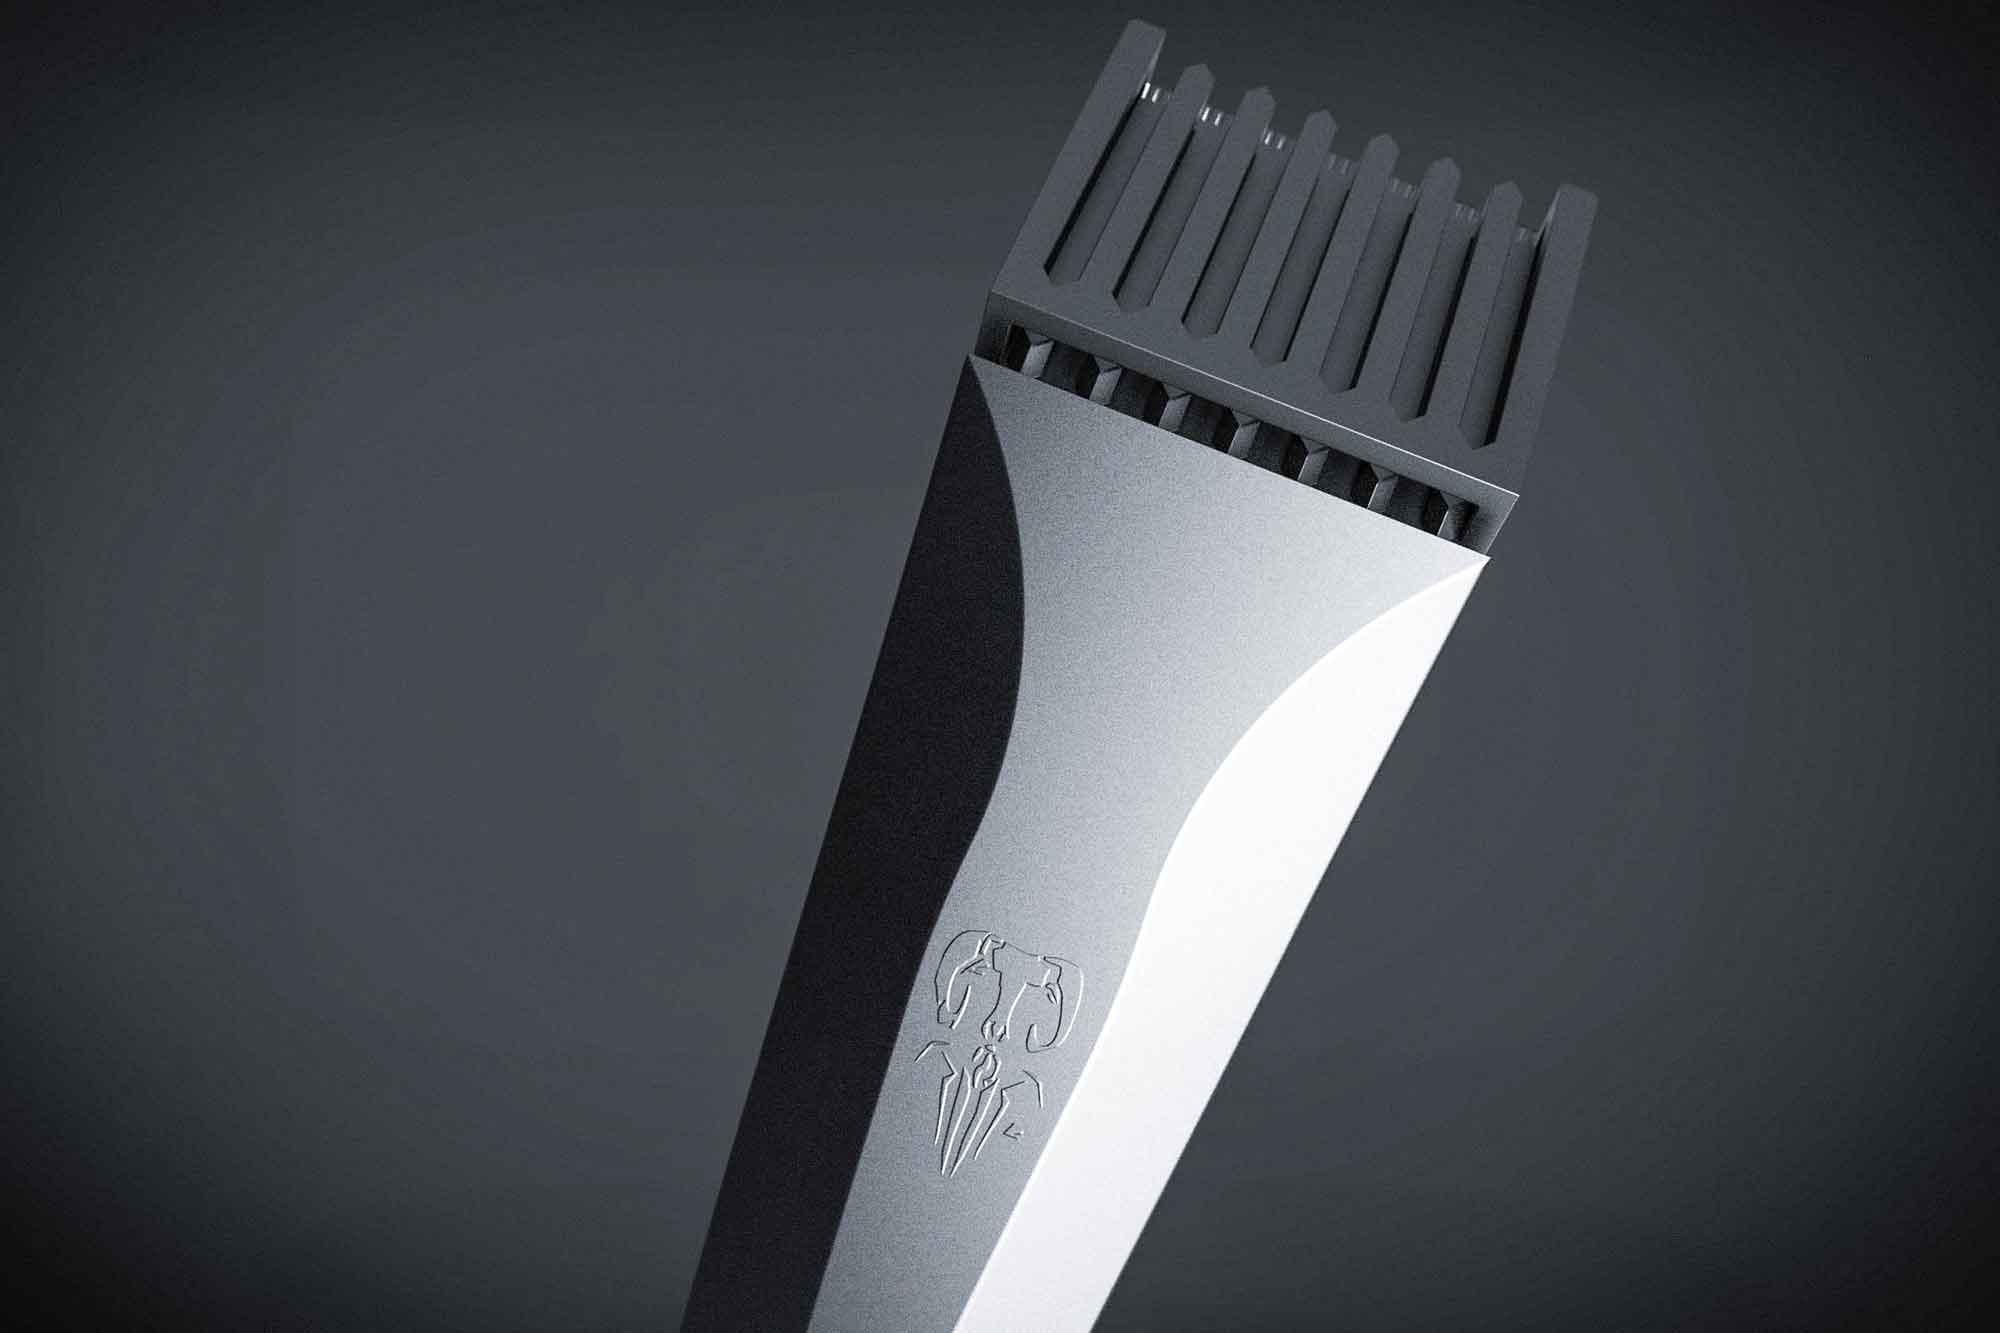 The beard trimmer features a flush guard that disappears completely when not in use.